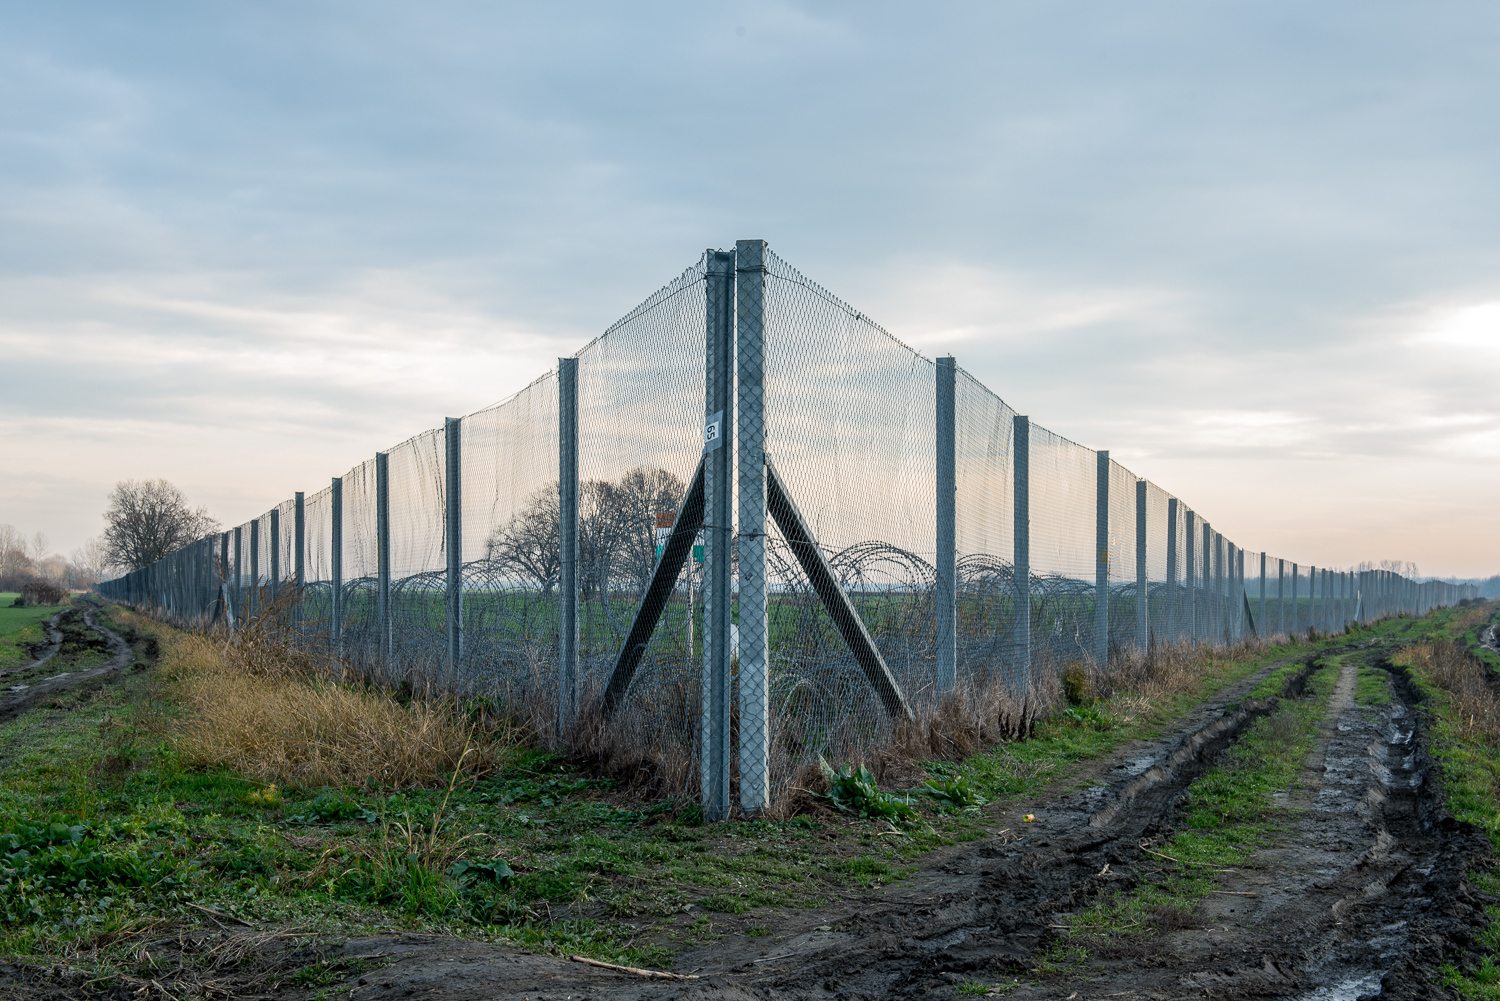 The border barrier which separates Hungary and Croatia near Kásád, Hungary 25 November 2017. The fence was constructed in the middle of the European migration crisis in 2015, with the aim to ensure border security by preventing immigrants from entering the country and the European Union illegally.